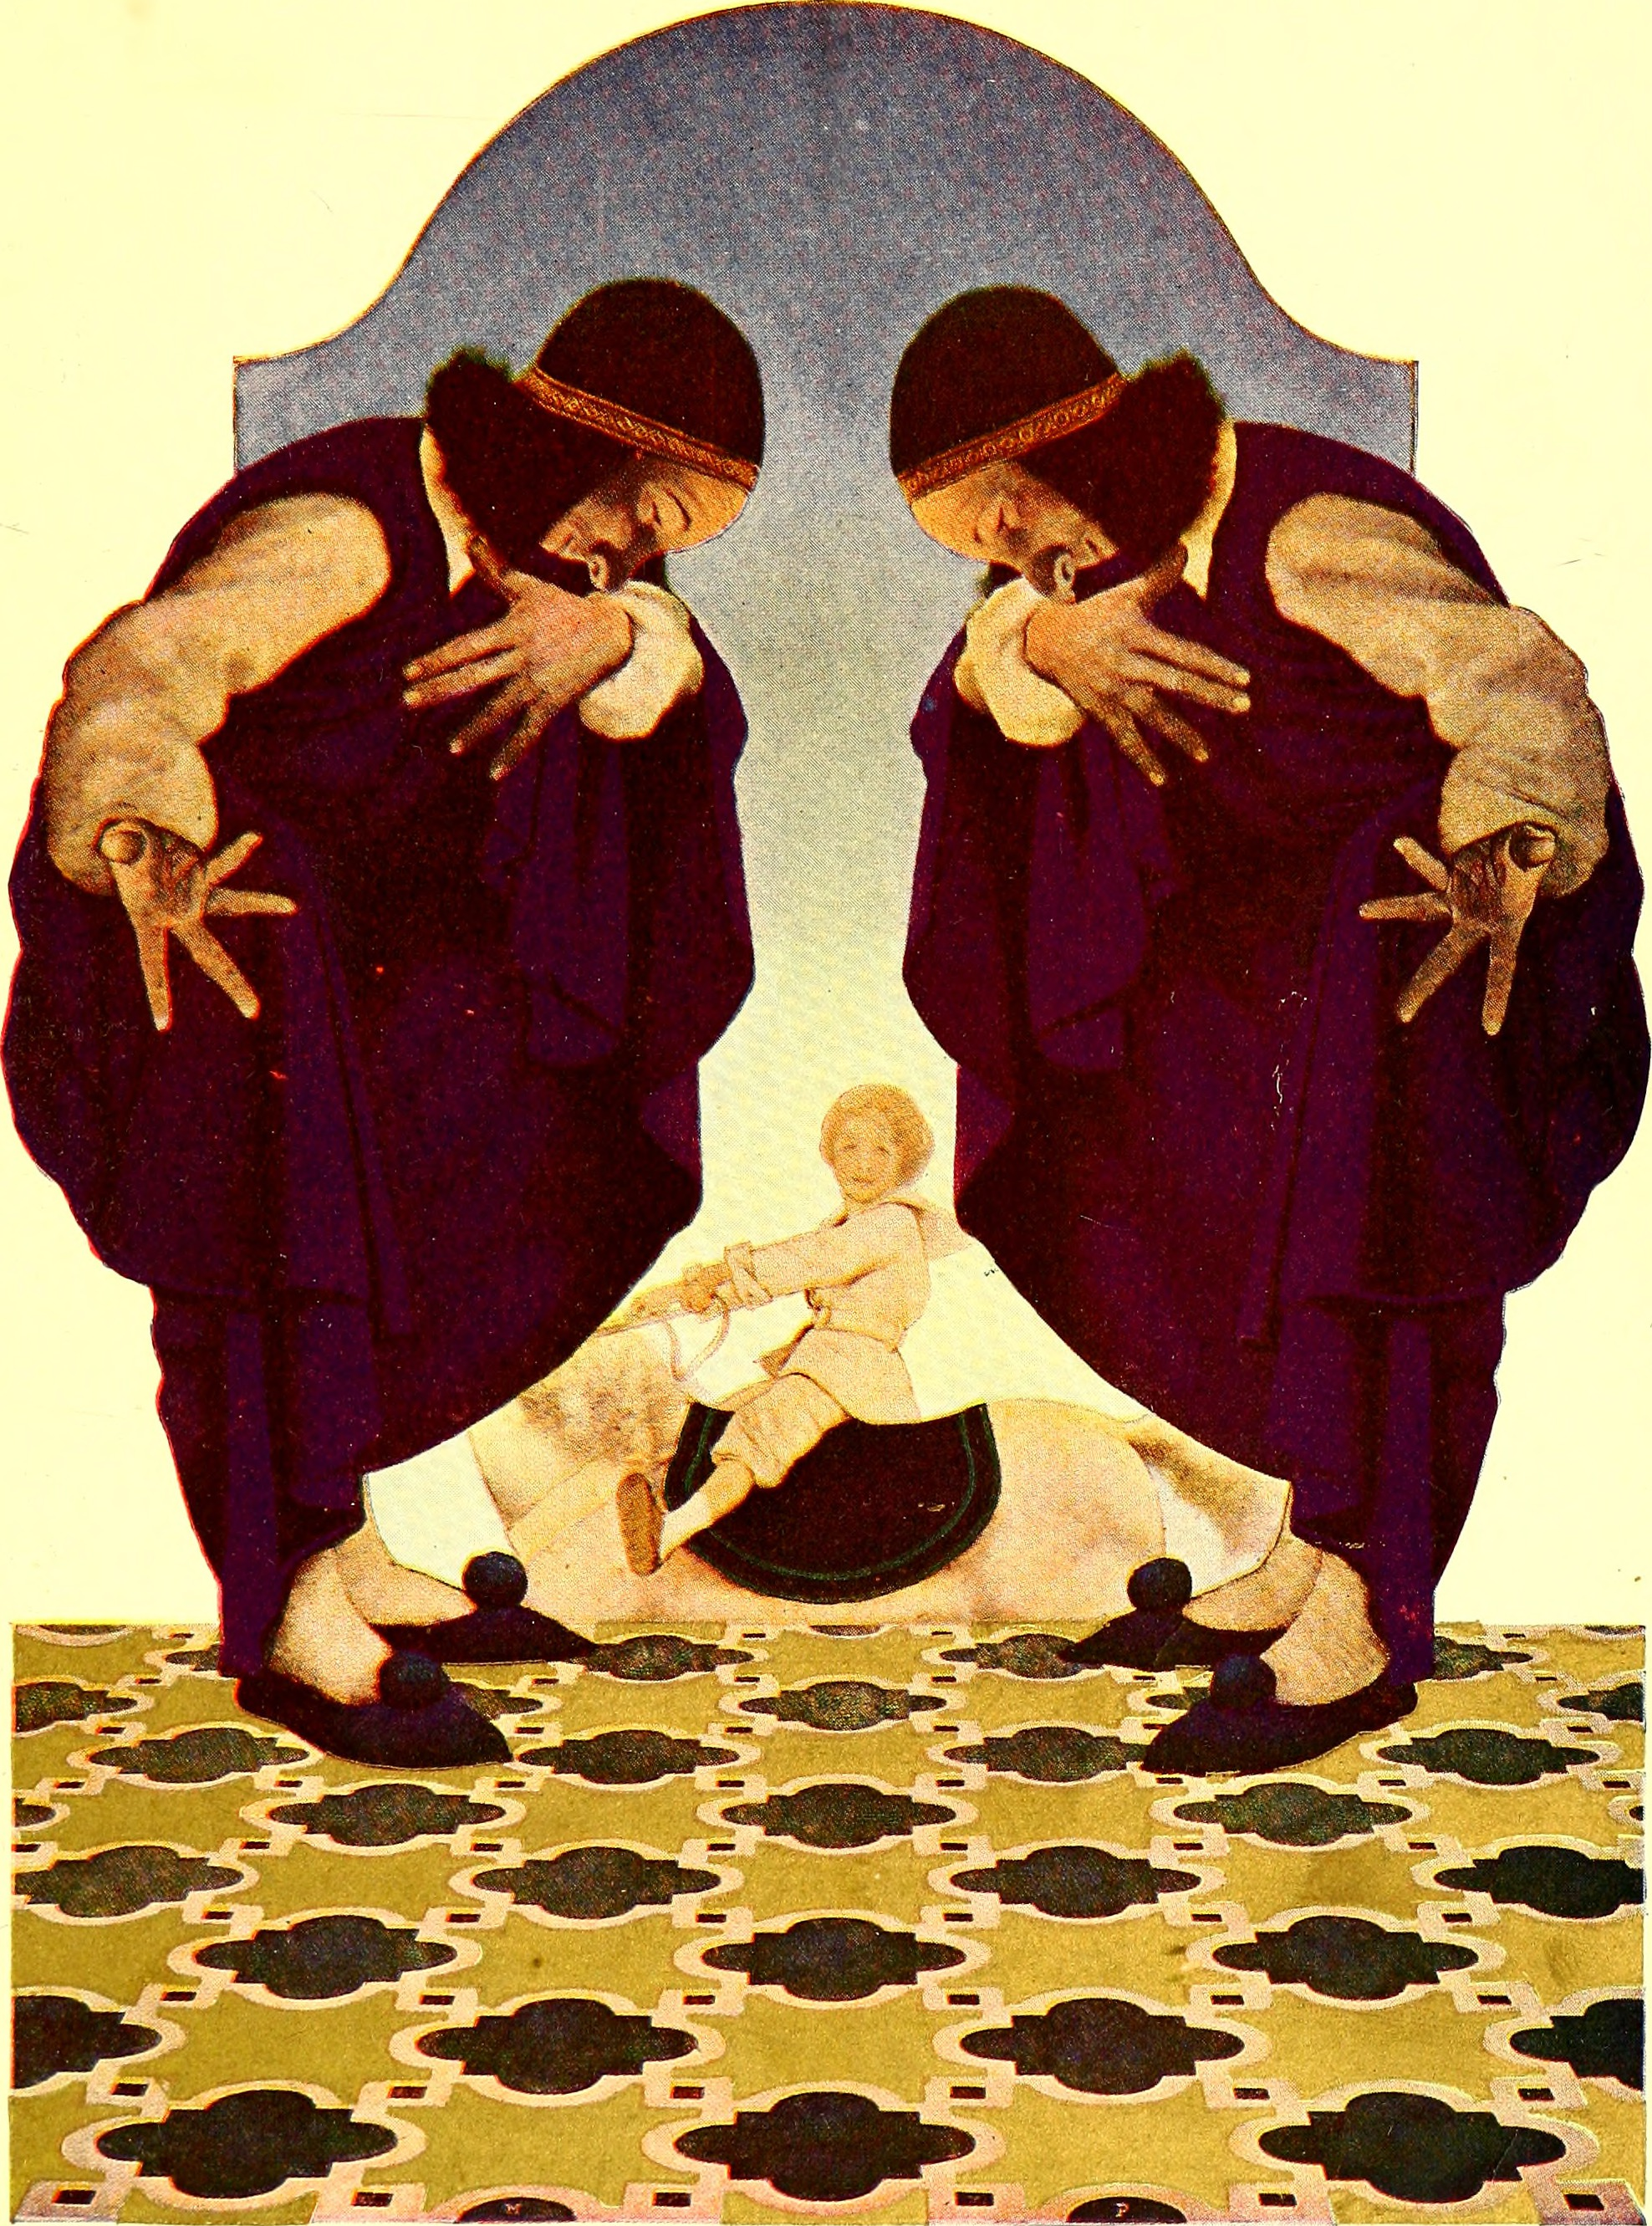 Illustrations from Poems of Childhood (1904) by Eugene Field with illustrations by Maxfield Parrish